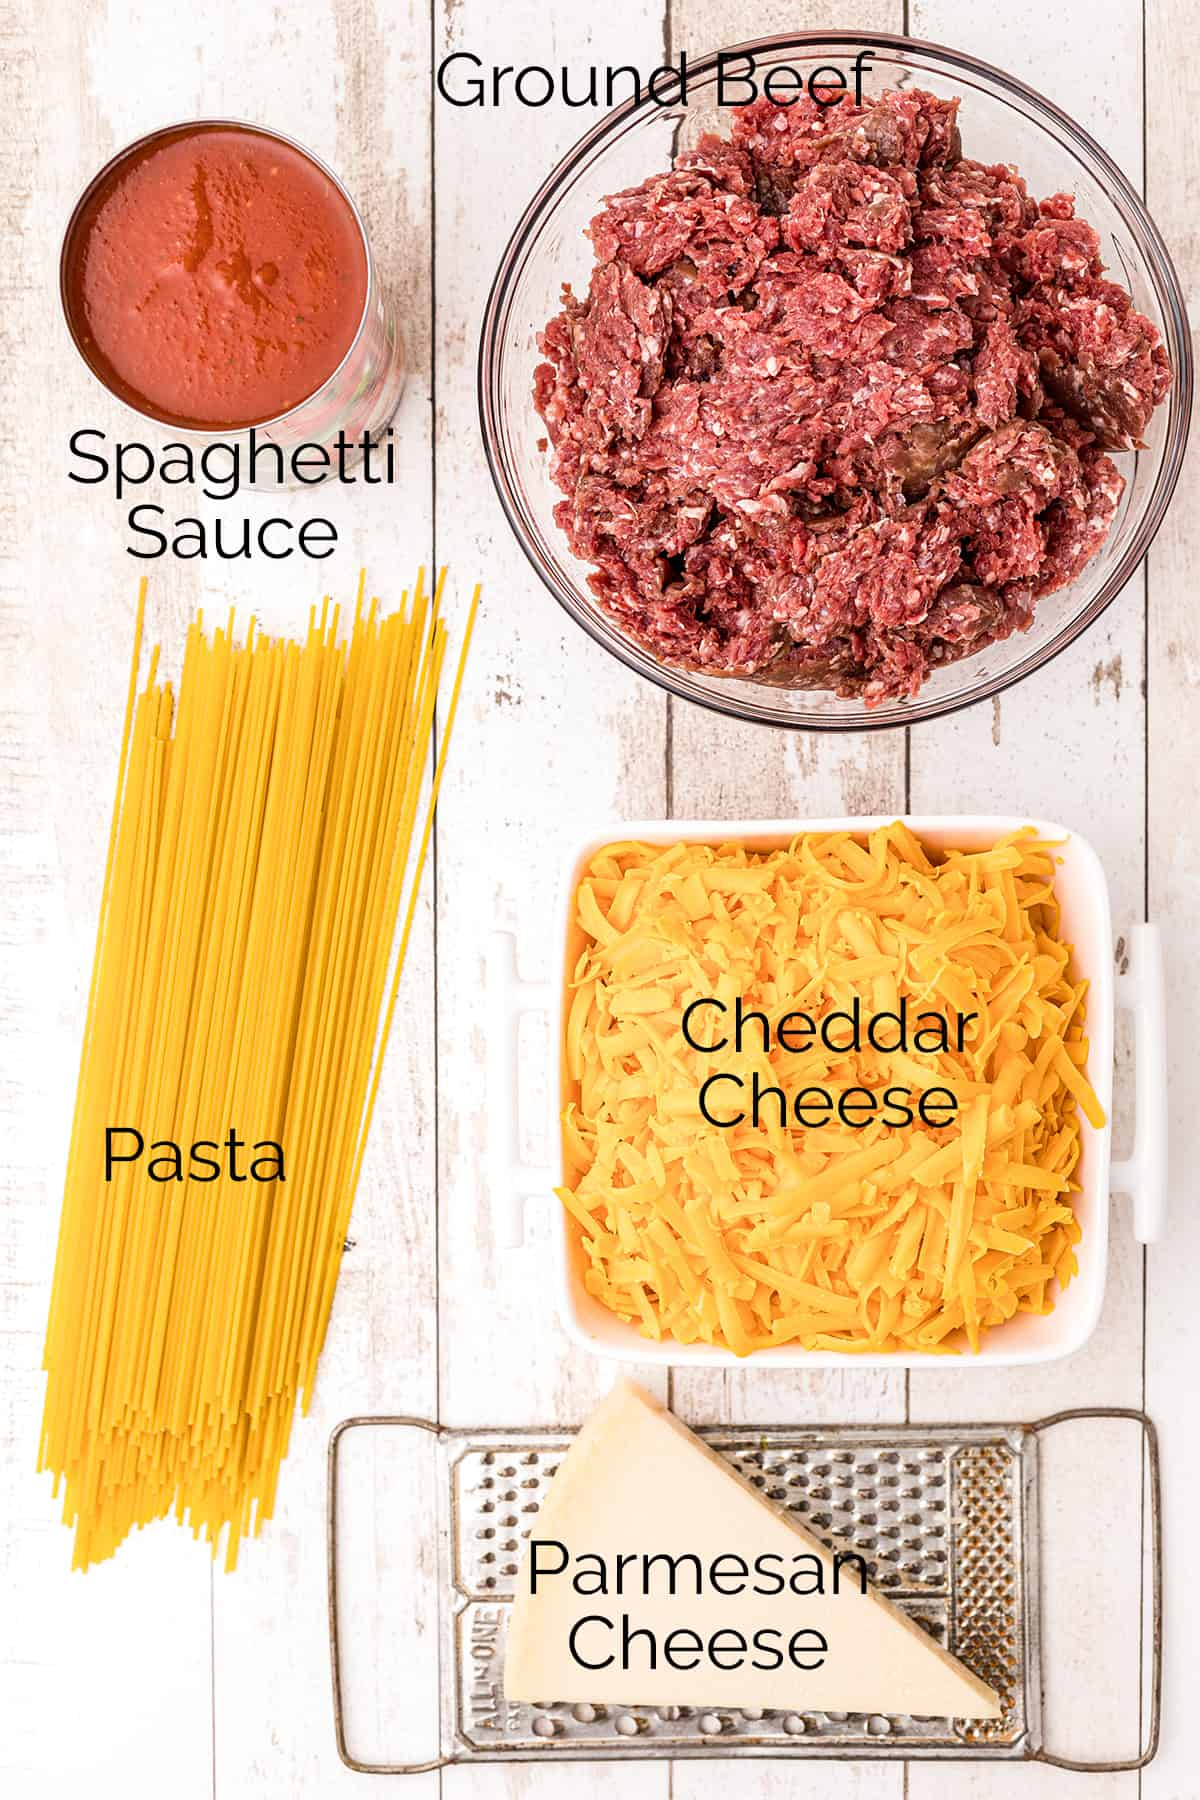 The five ingredients needed for the recipe - spaghetti sauce, ground beef, pasta, cheddar cheese, parmesan cheese.